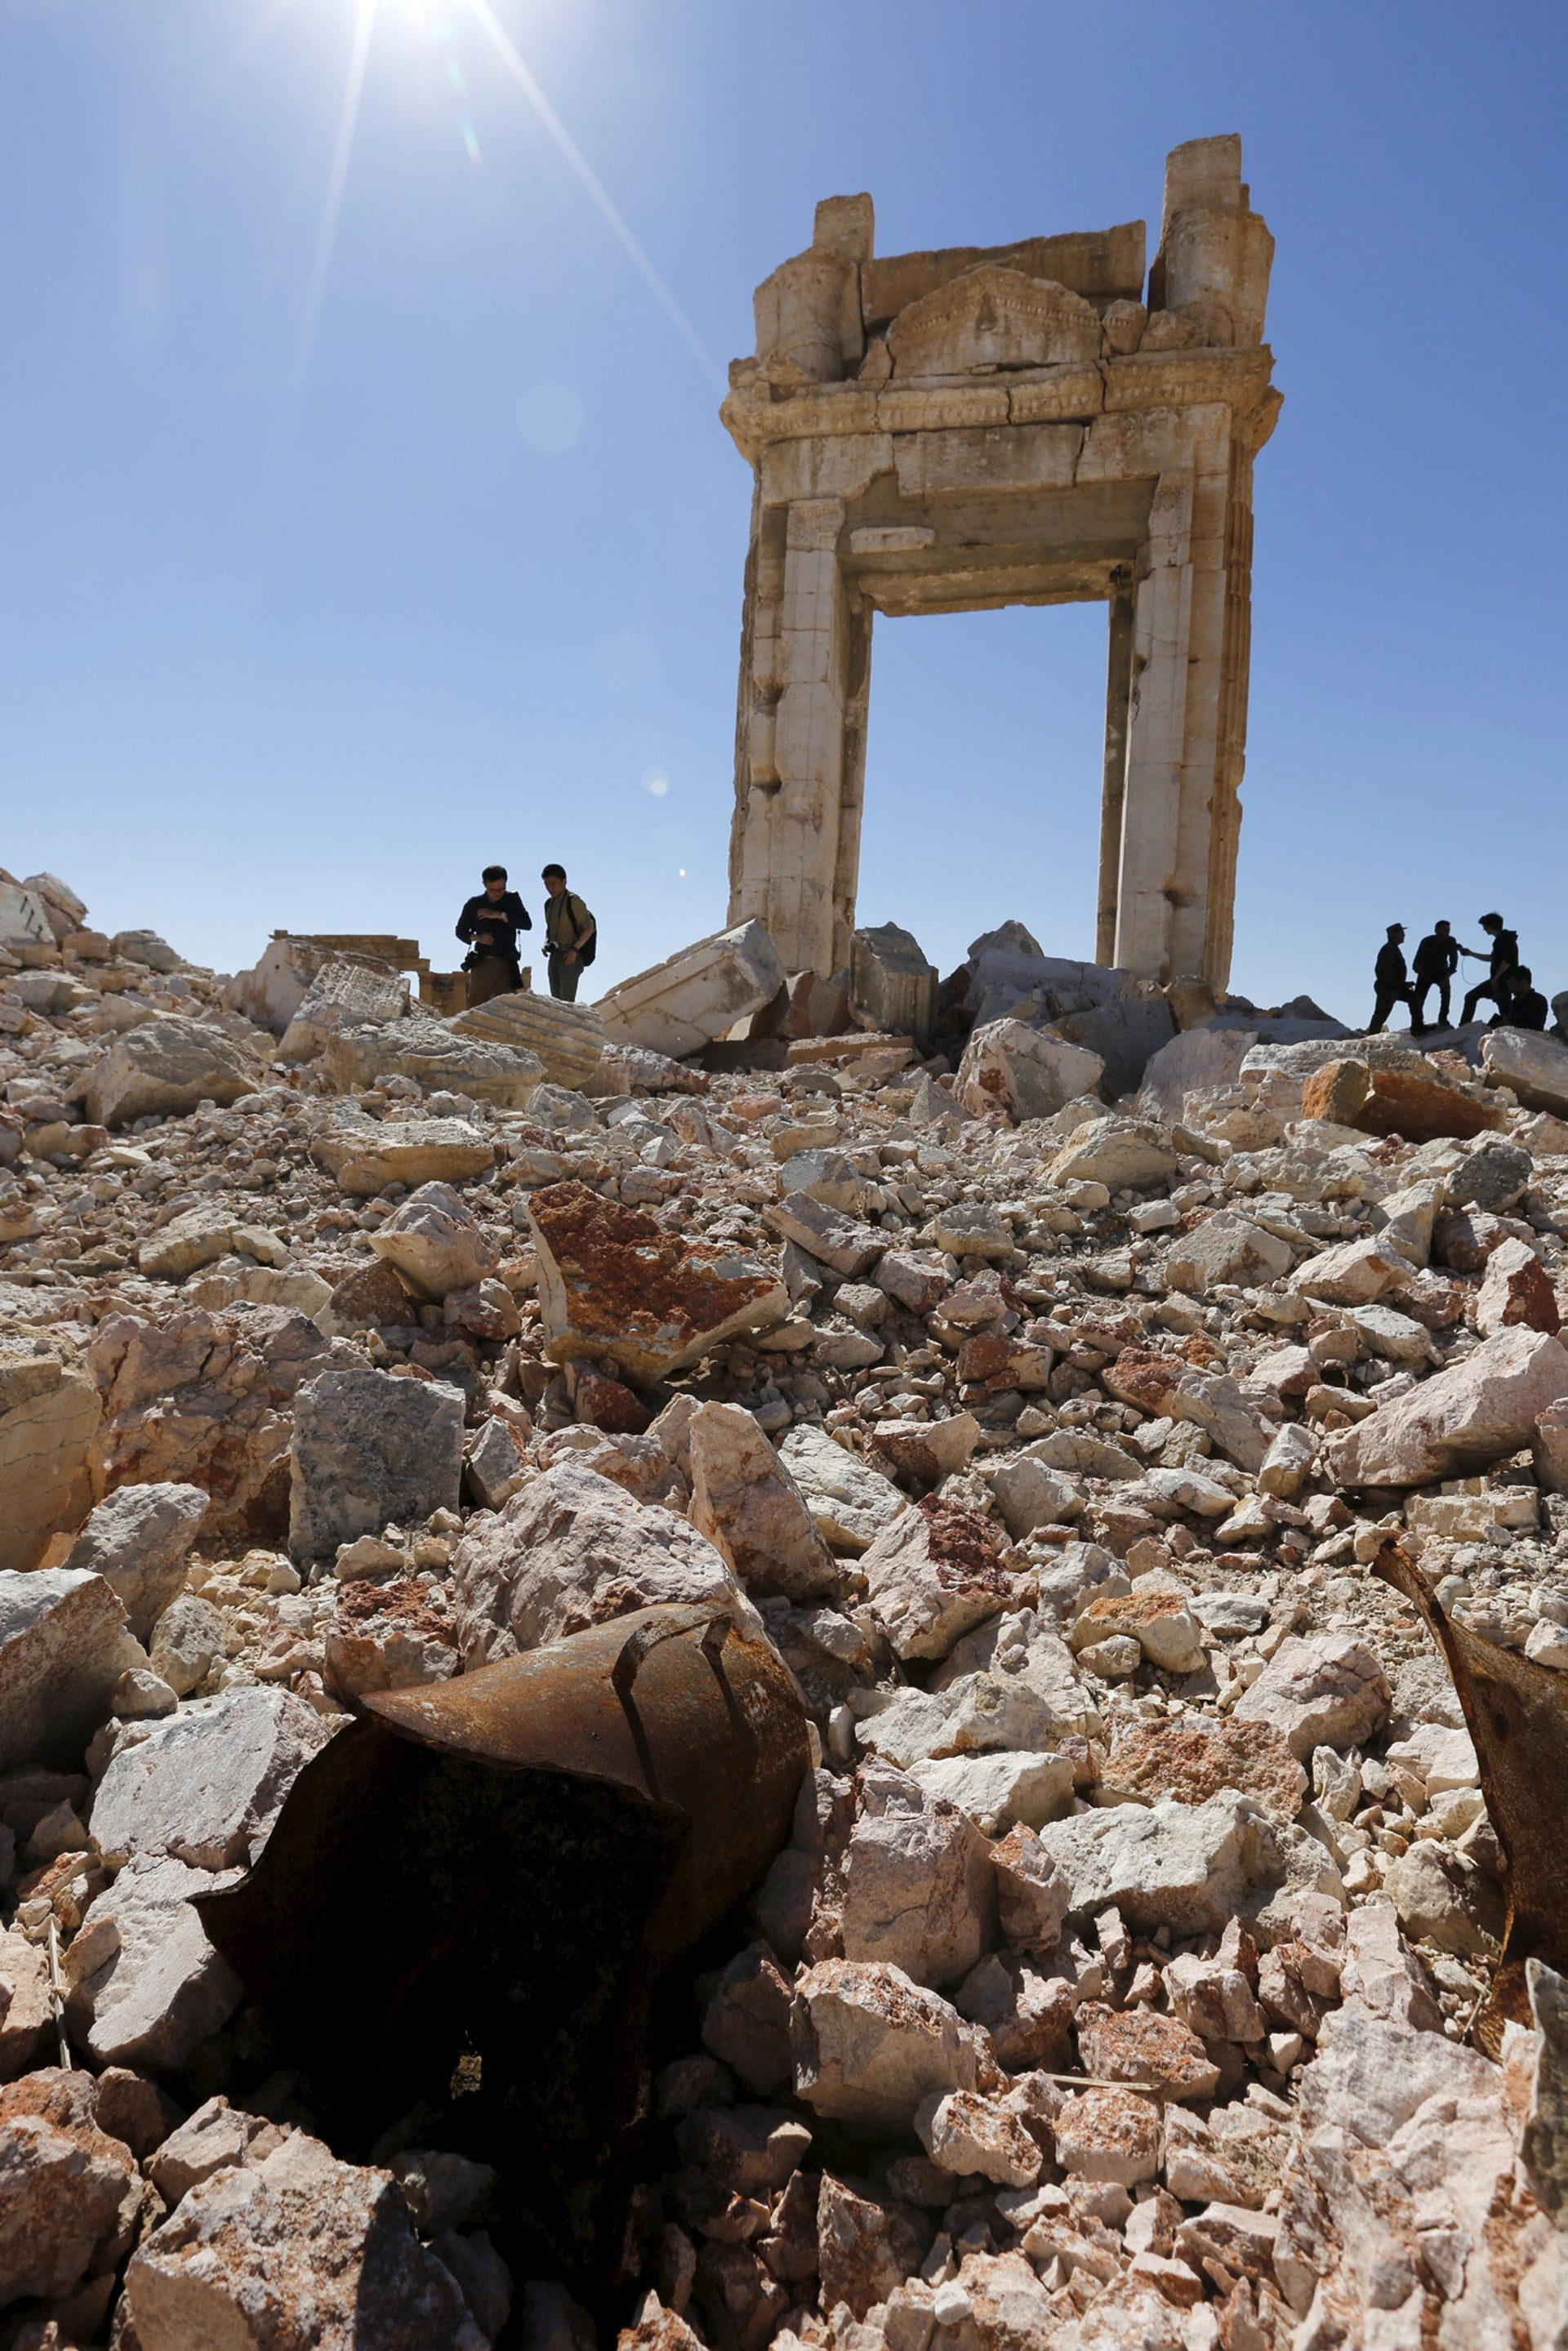 Journalists stand on ruins of theTemple of Bel in historic city of Palmyra, in Homs Governorate, Syria April 1, 2016.